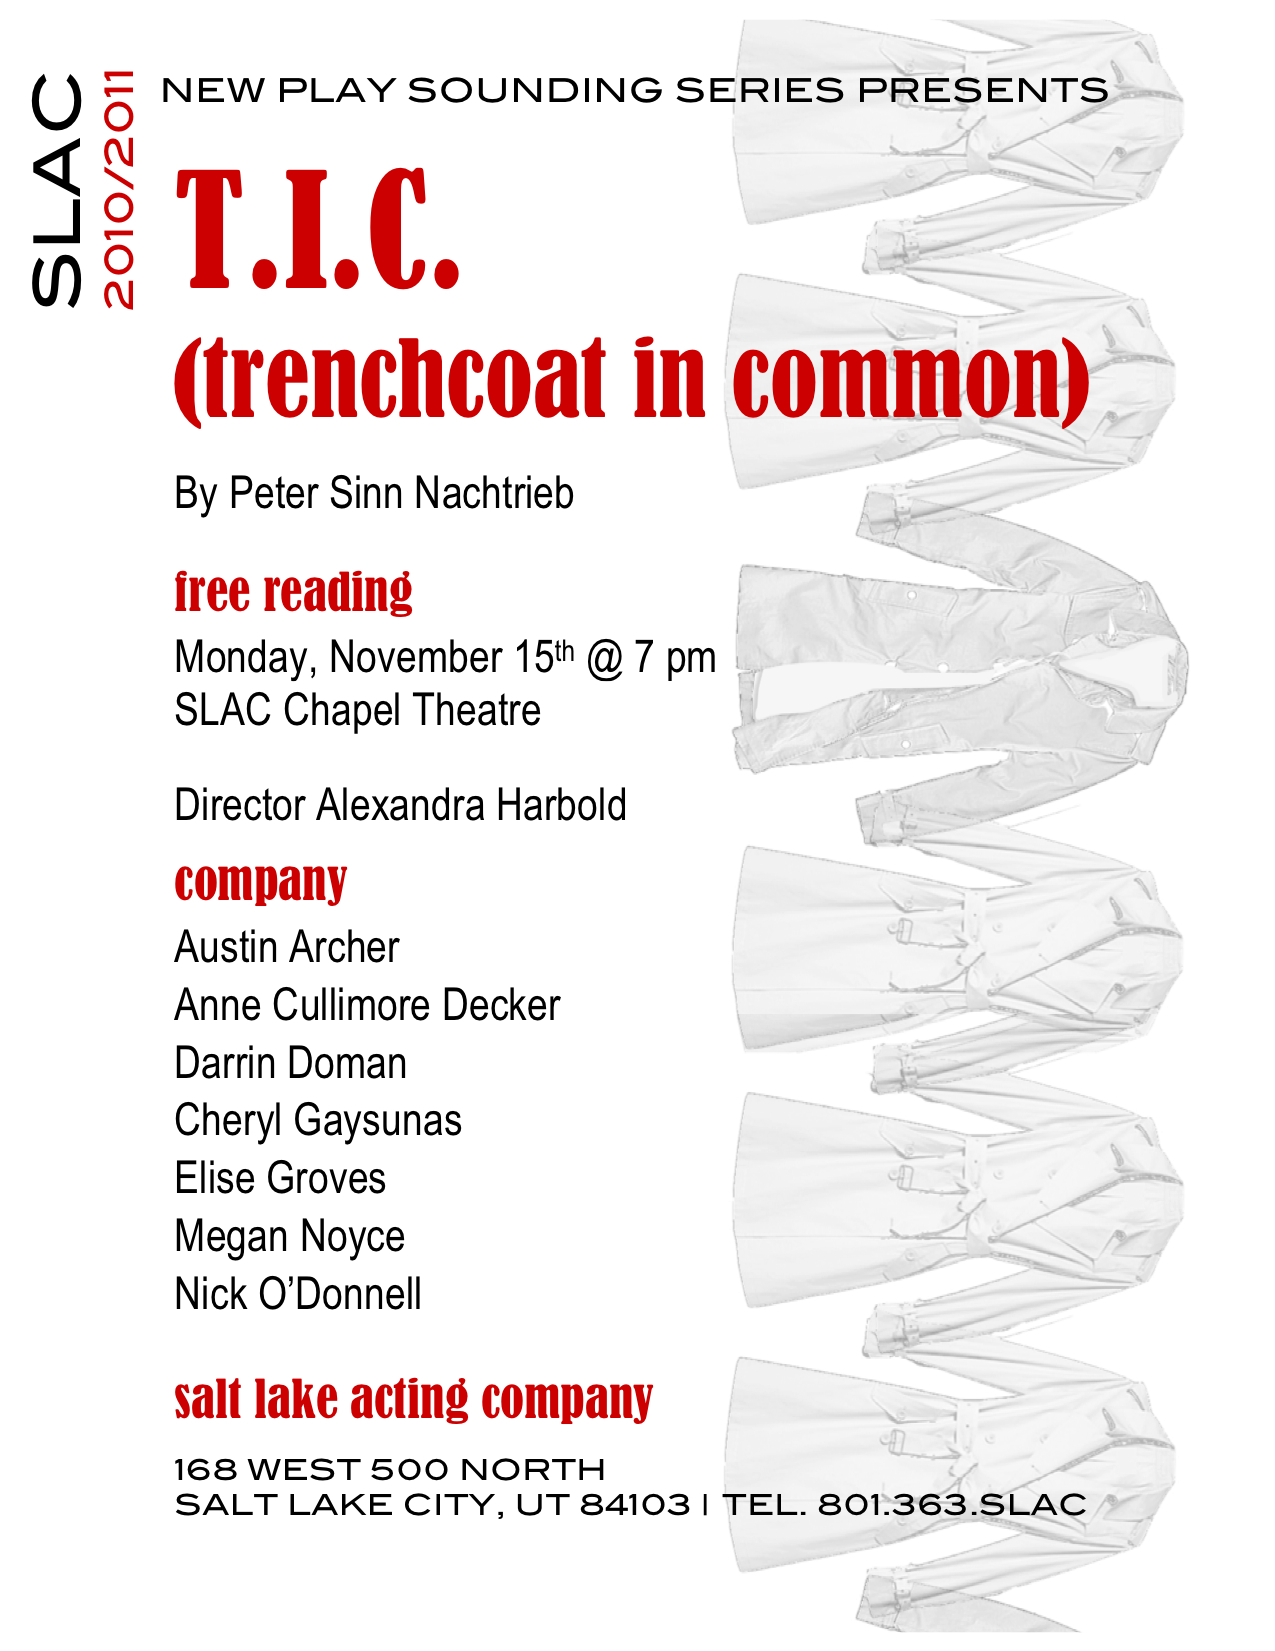 Trenchcoat_in_Common_posterFinal